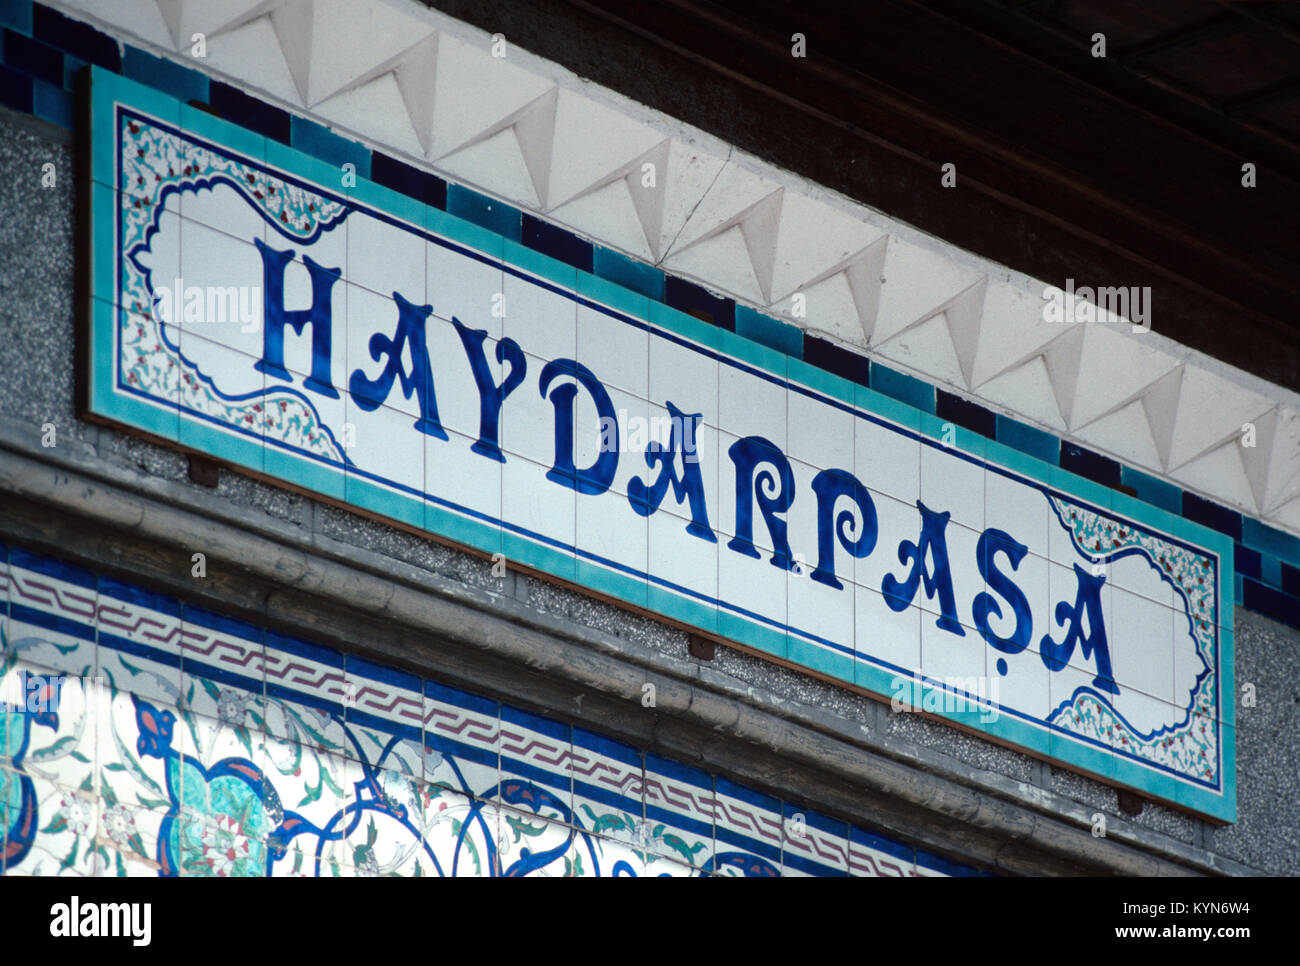 Tiled Place Name Sign at Haydarpasa Ferry Terminal of the Haydarpasa Railway Station, Istanbul, turkey - Stock Image